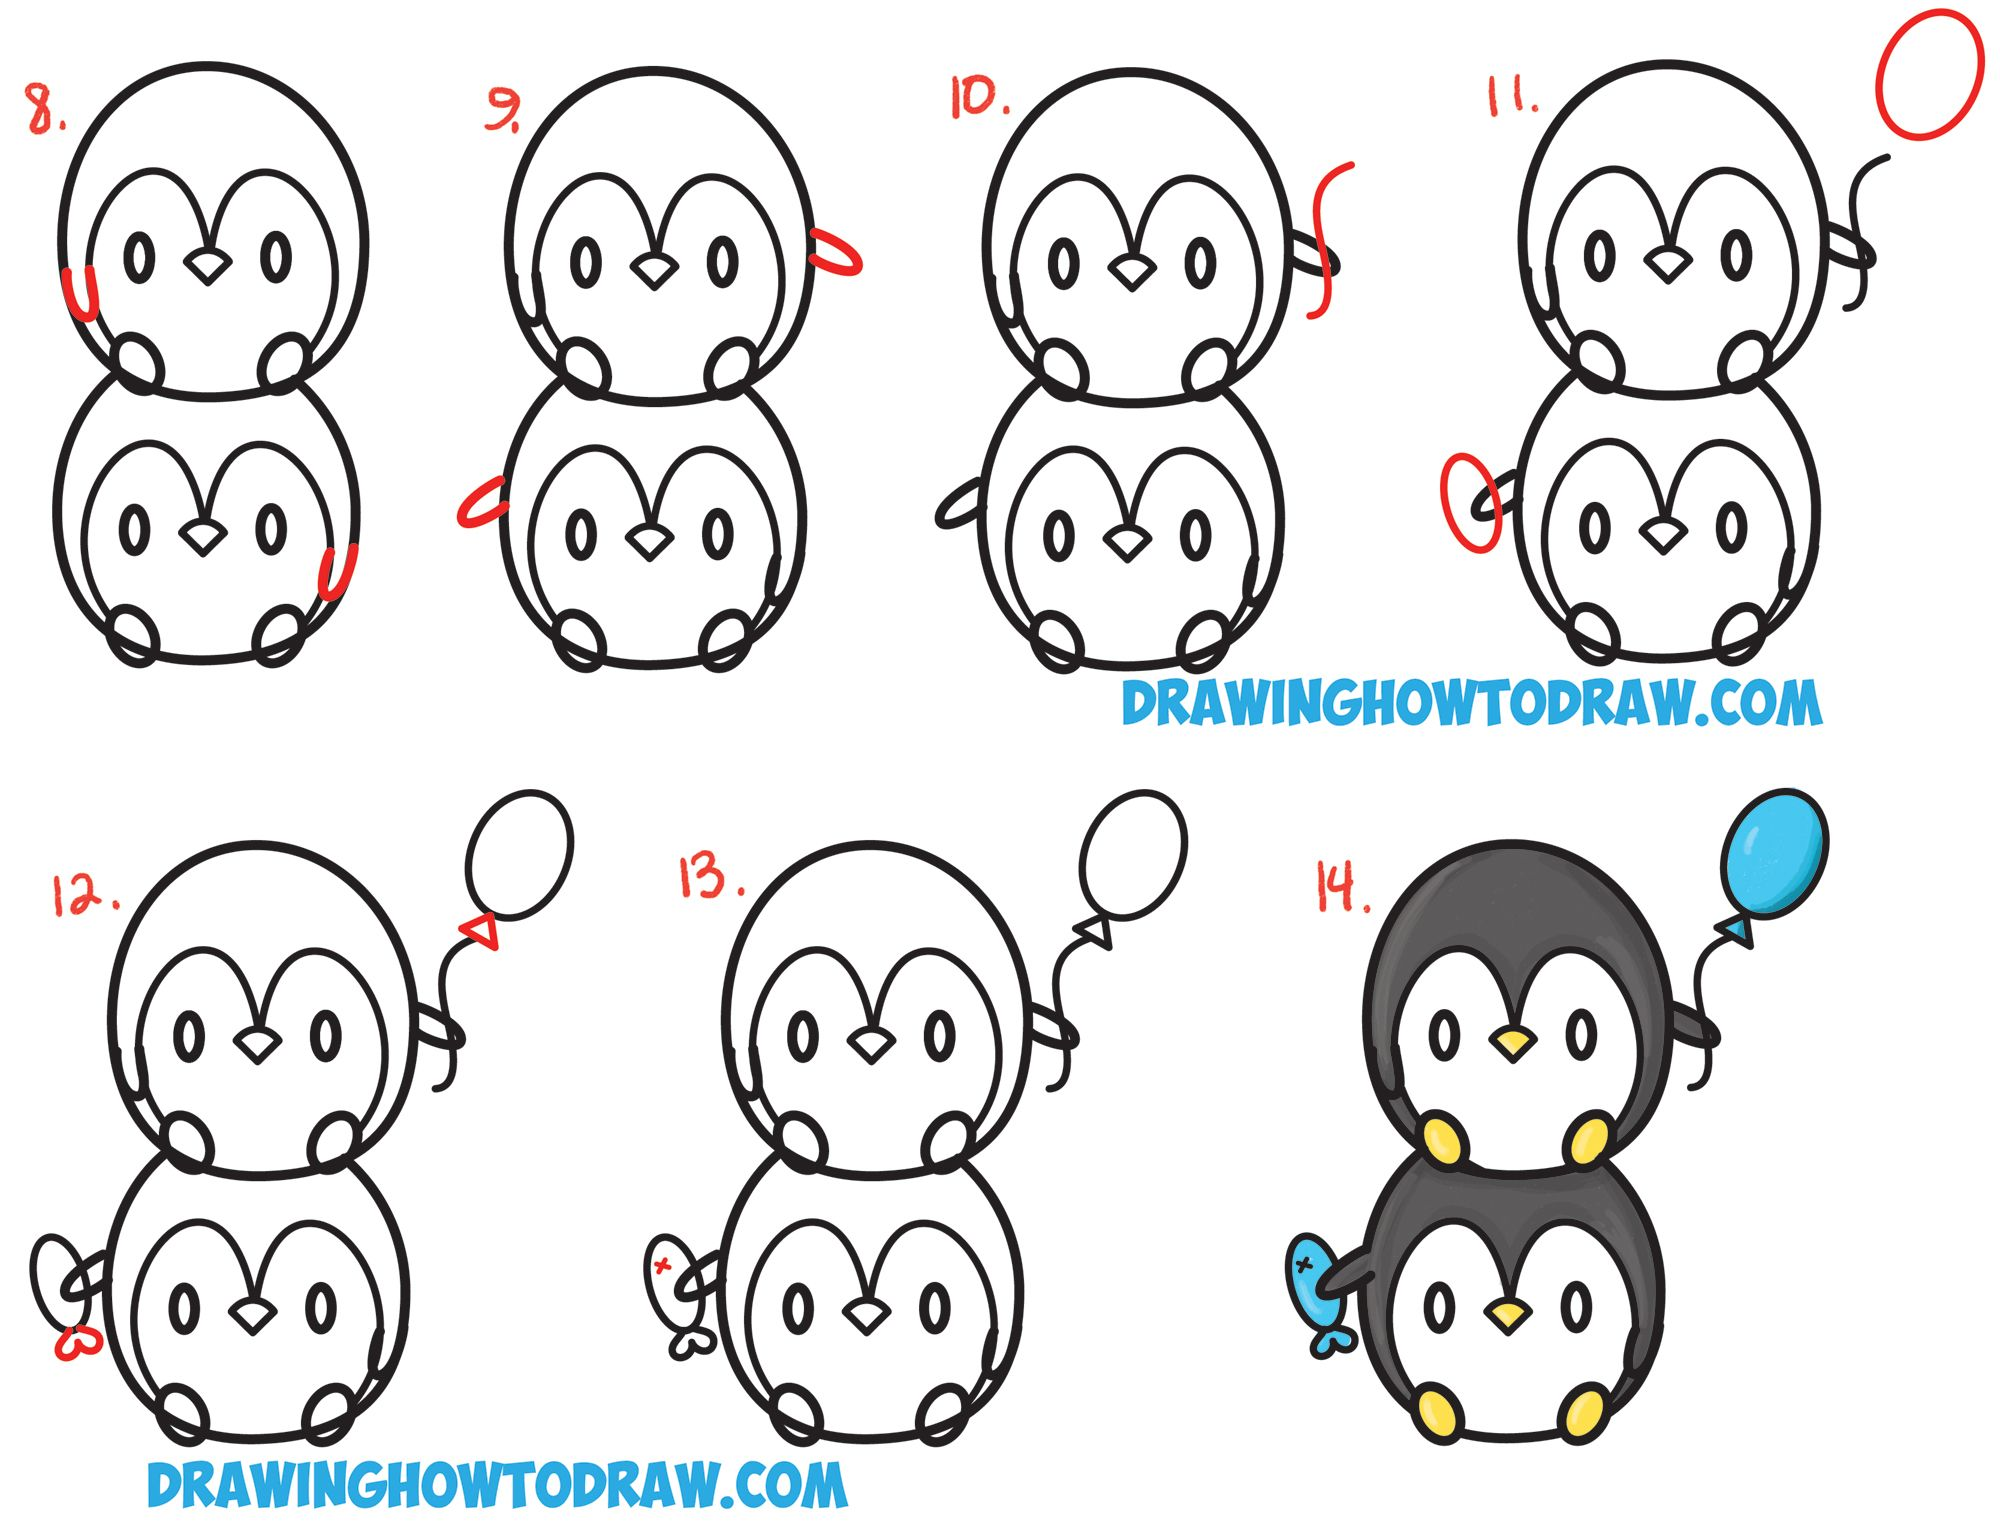 How to Draw Cute Kawaii Penguins Stacked from #8 with Easy ...